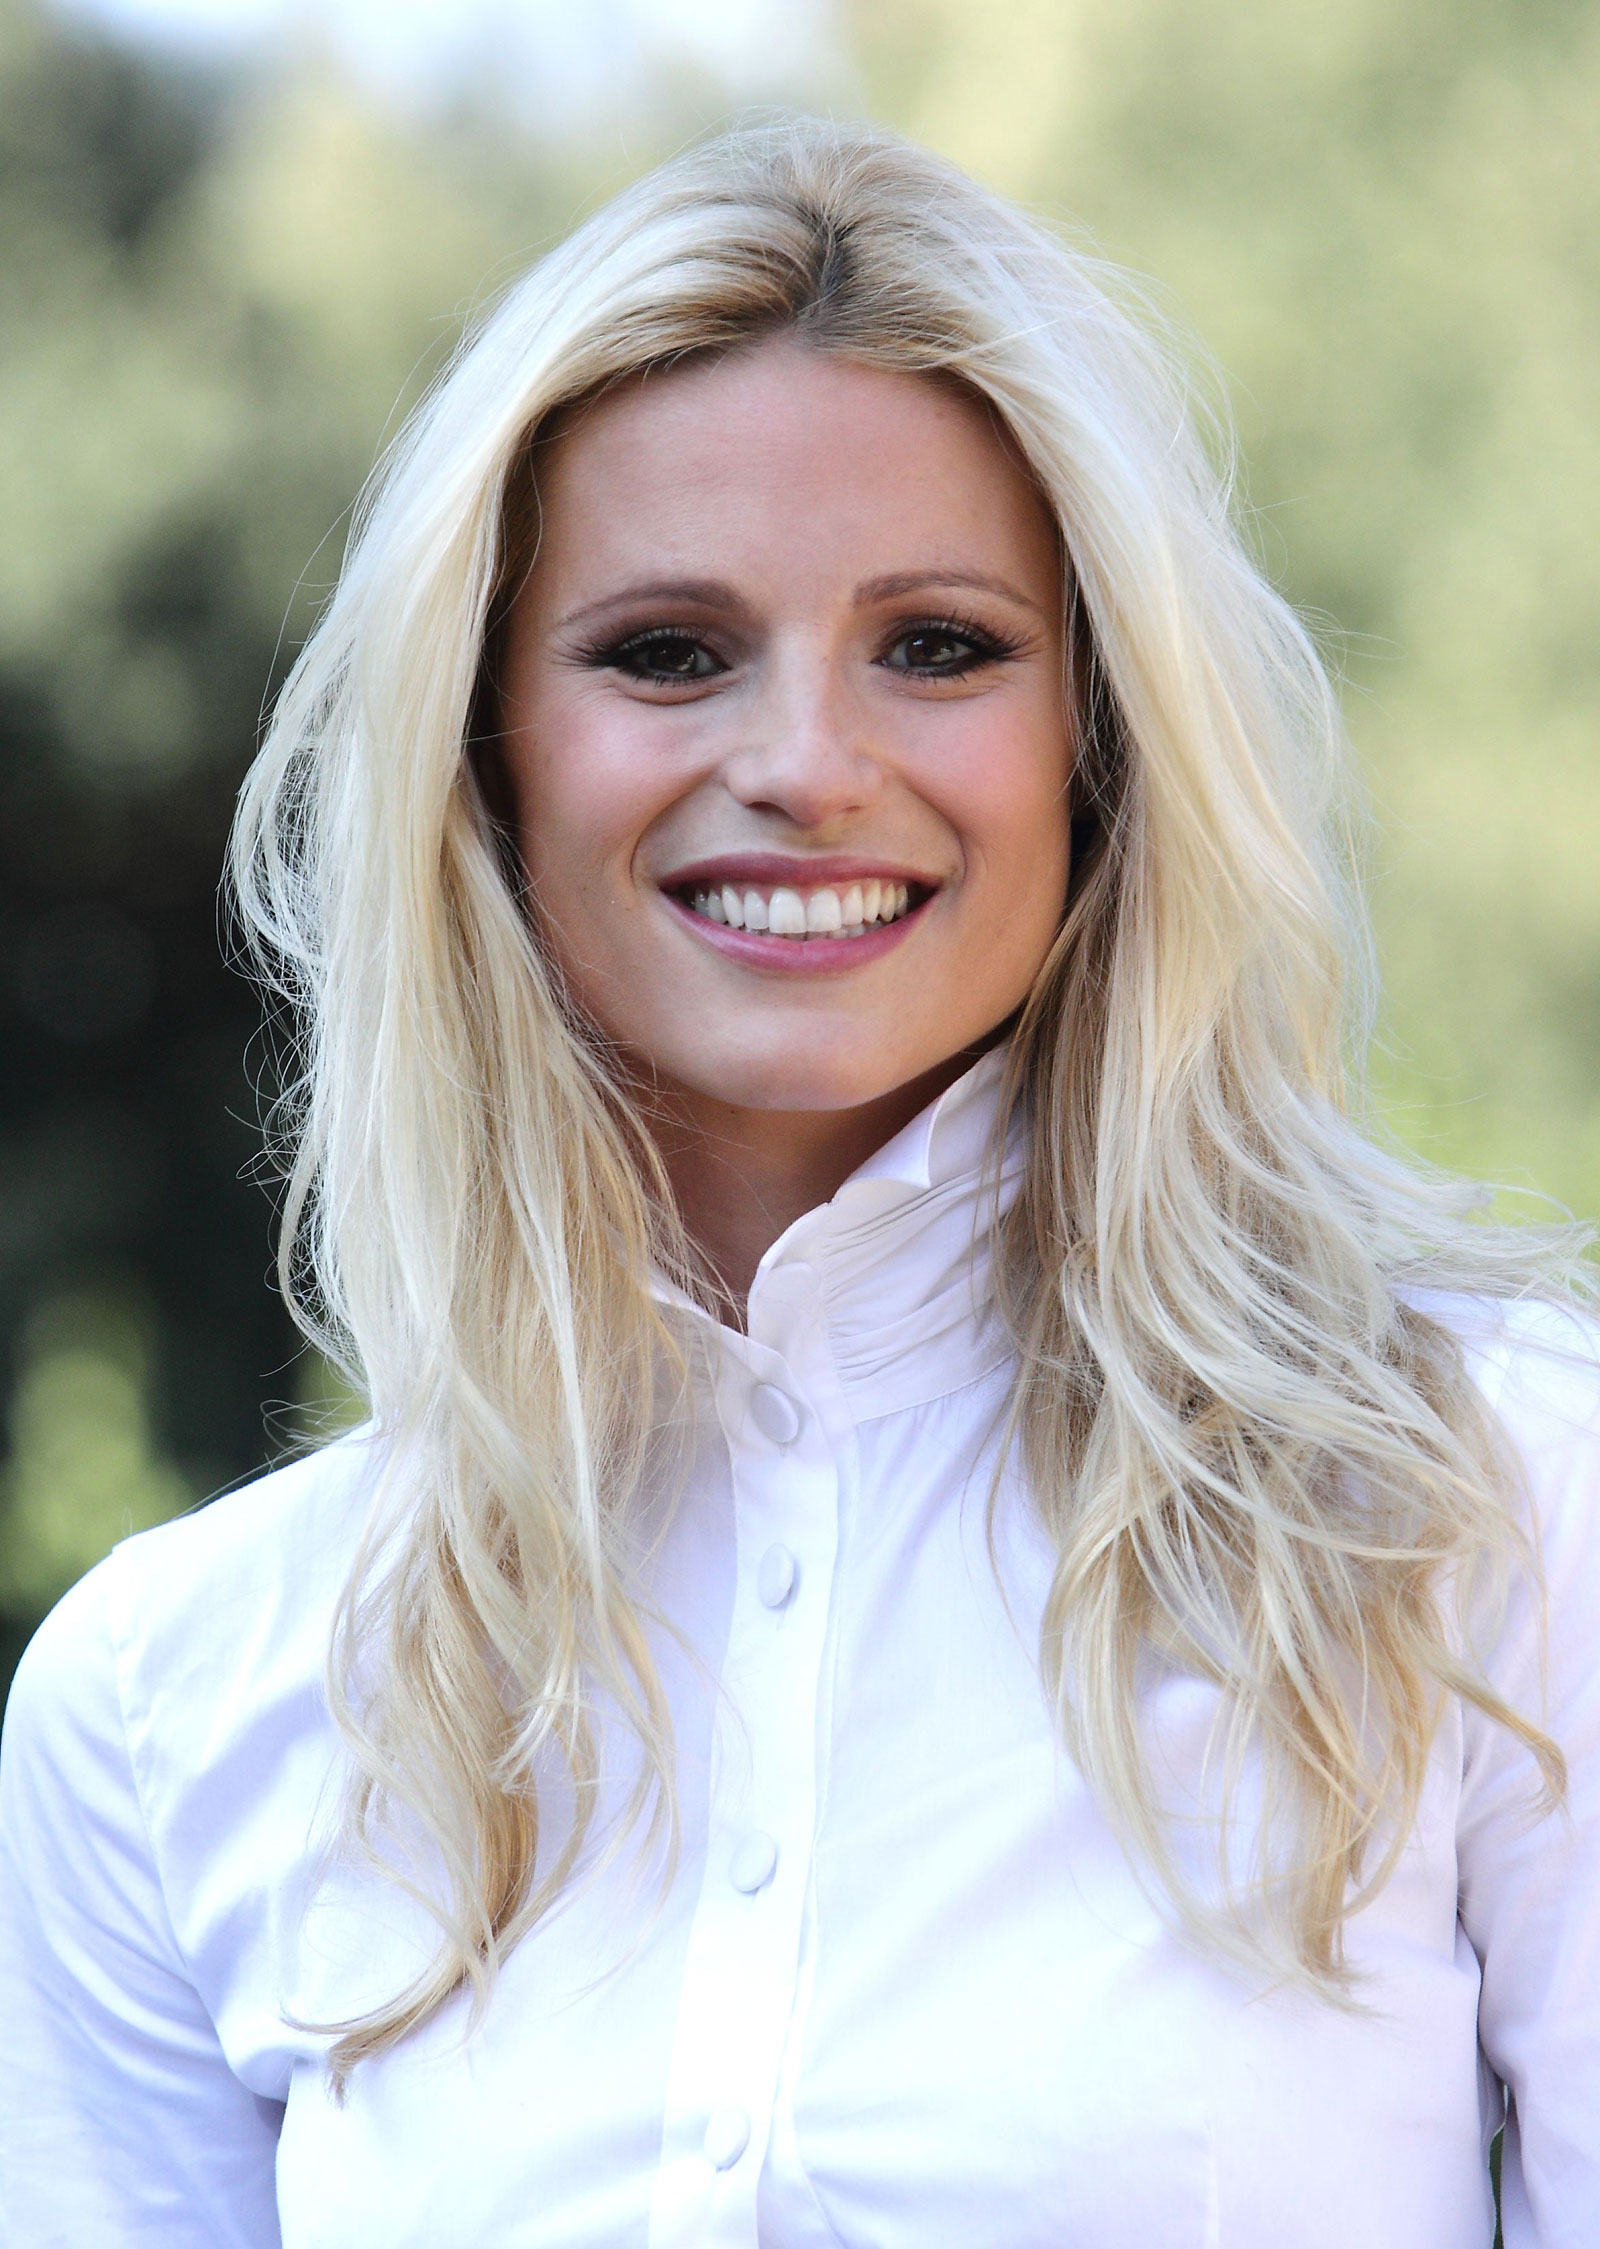 Michelle Hunziker at Amore Nero Photocall in Rome, Italy